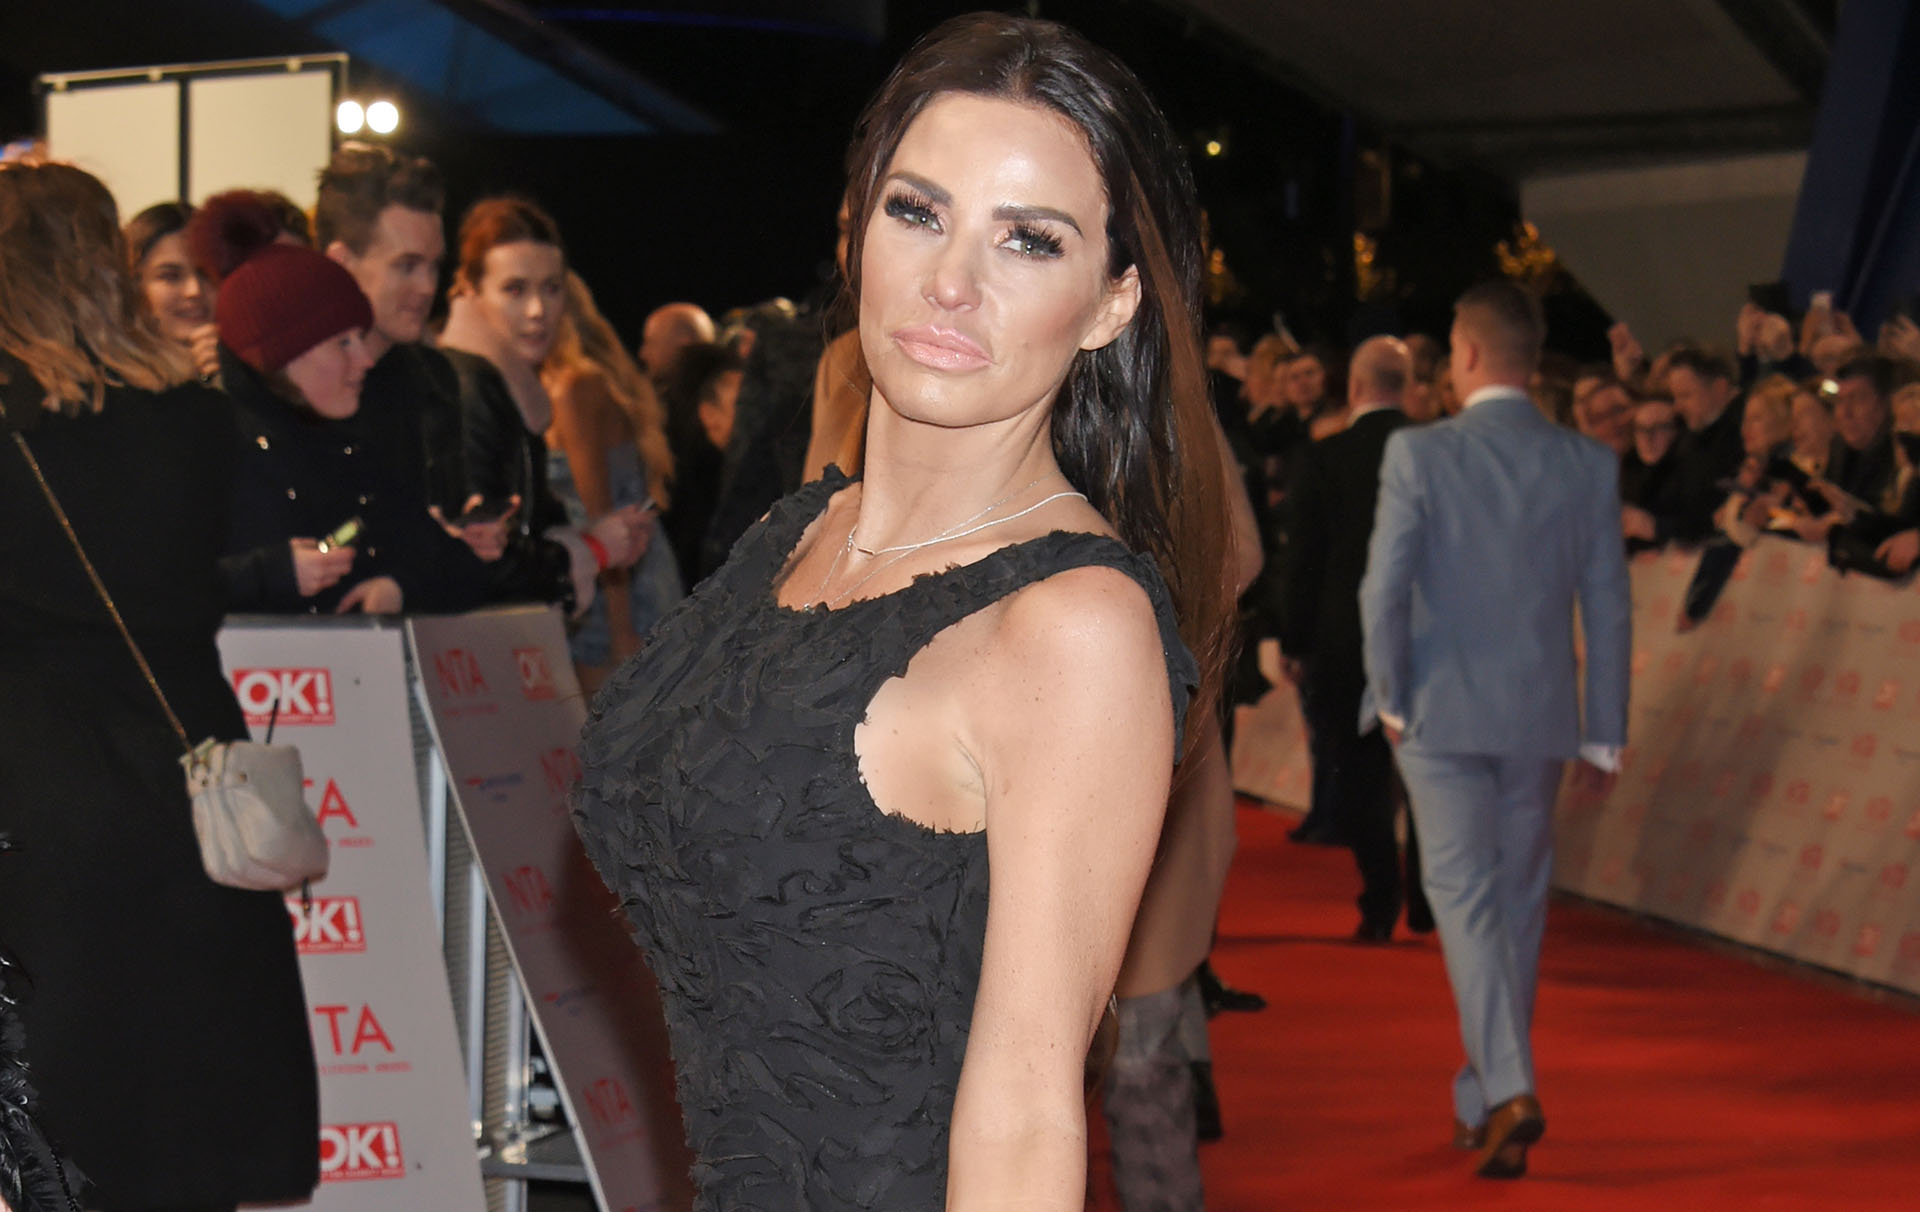 katie price launches clothing line